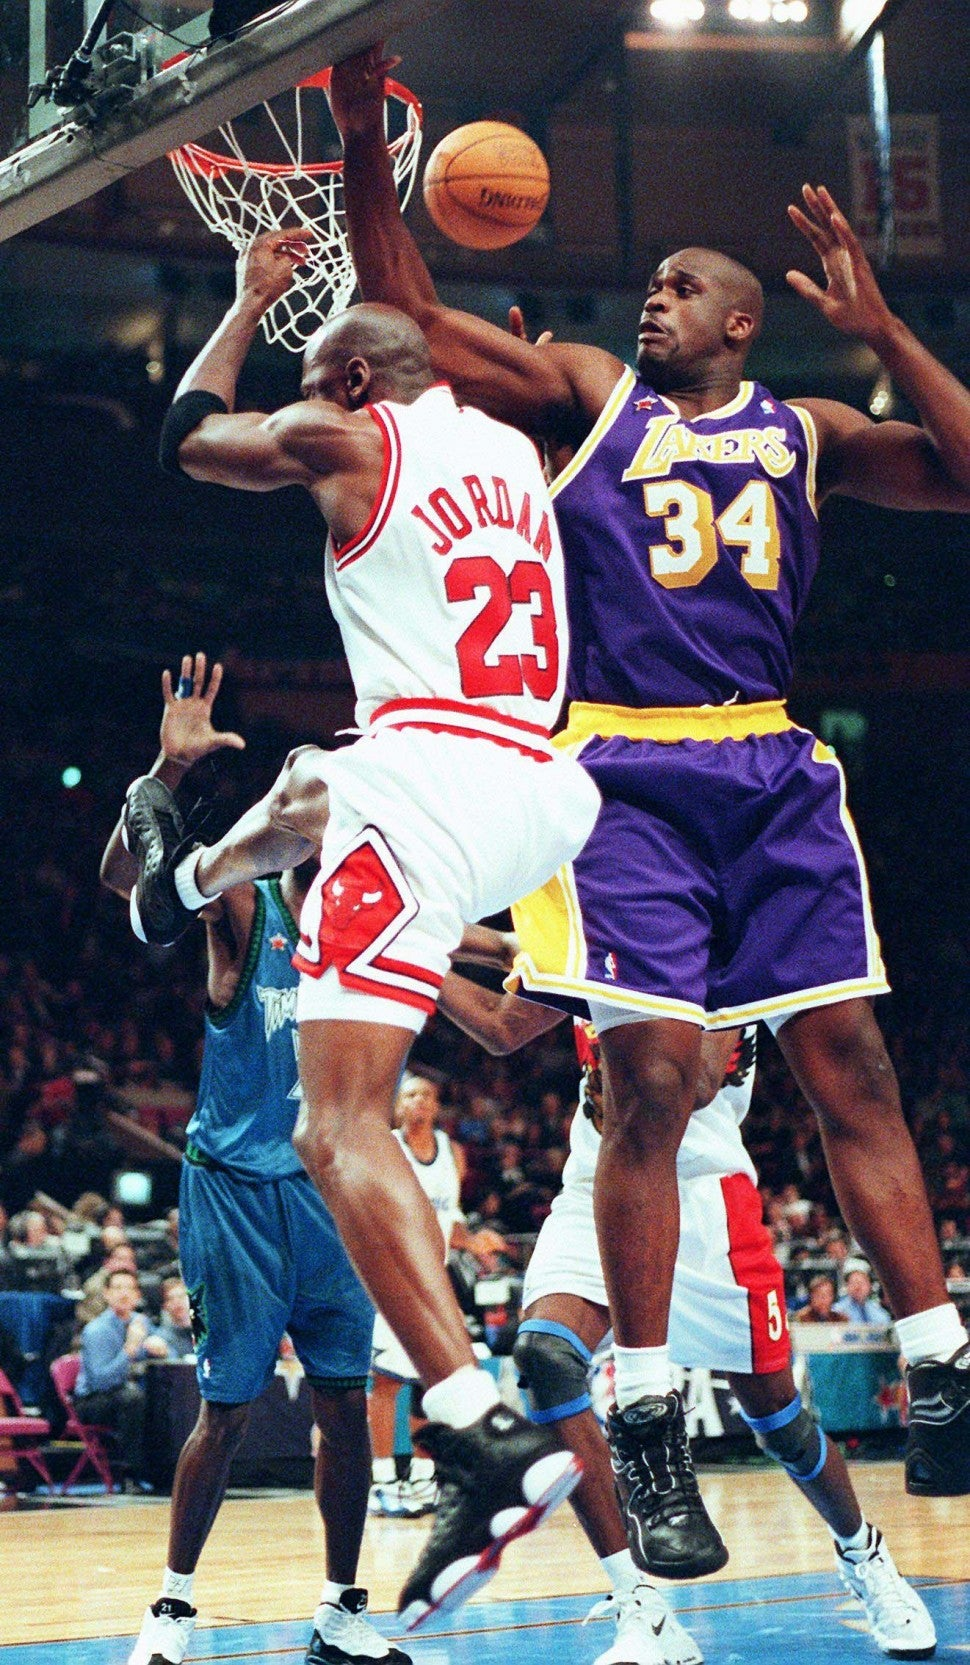 Michael Jordan (L) drives on the Los Angeles Lakers' Shaquille O'Neal (R) in the third quarter of the 1998 NBA All-Star Game at Madison Square Garden in New York City 08 February.